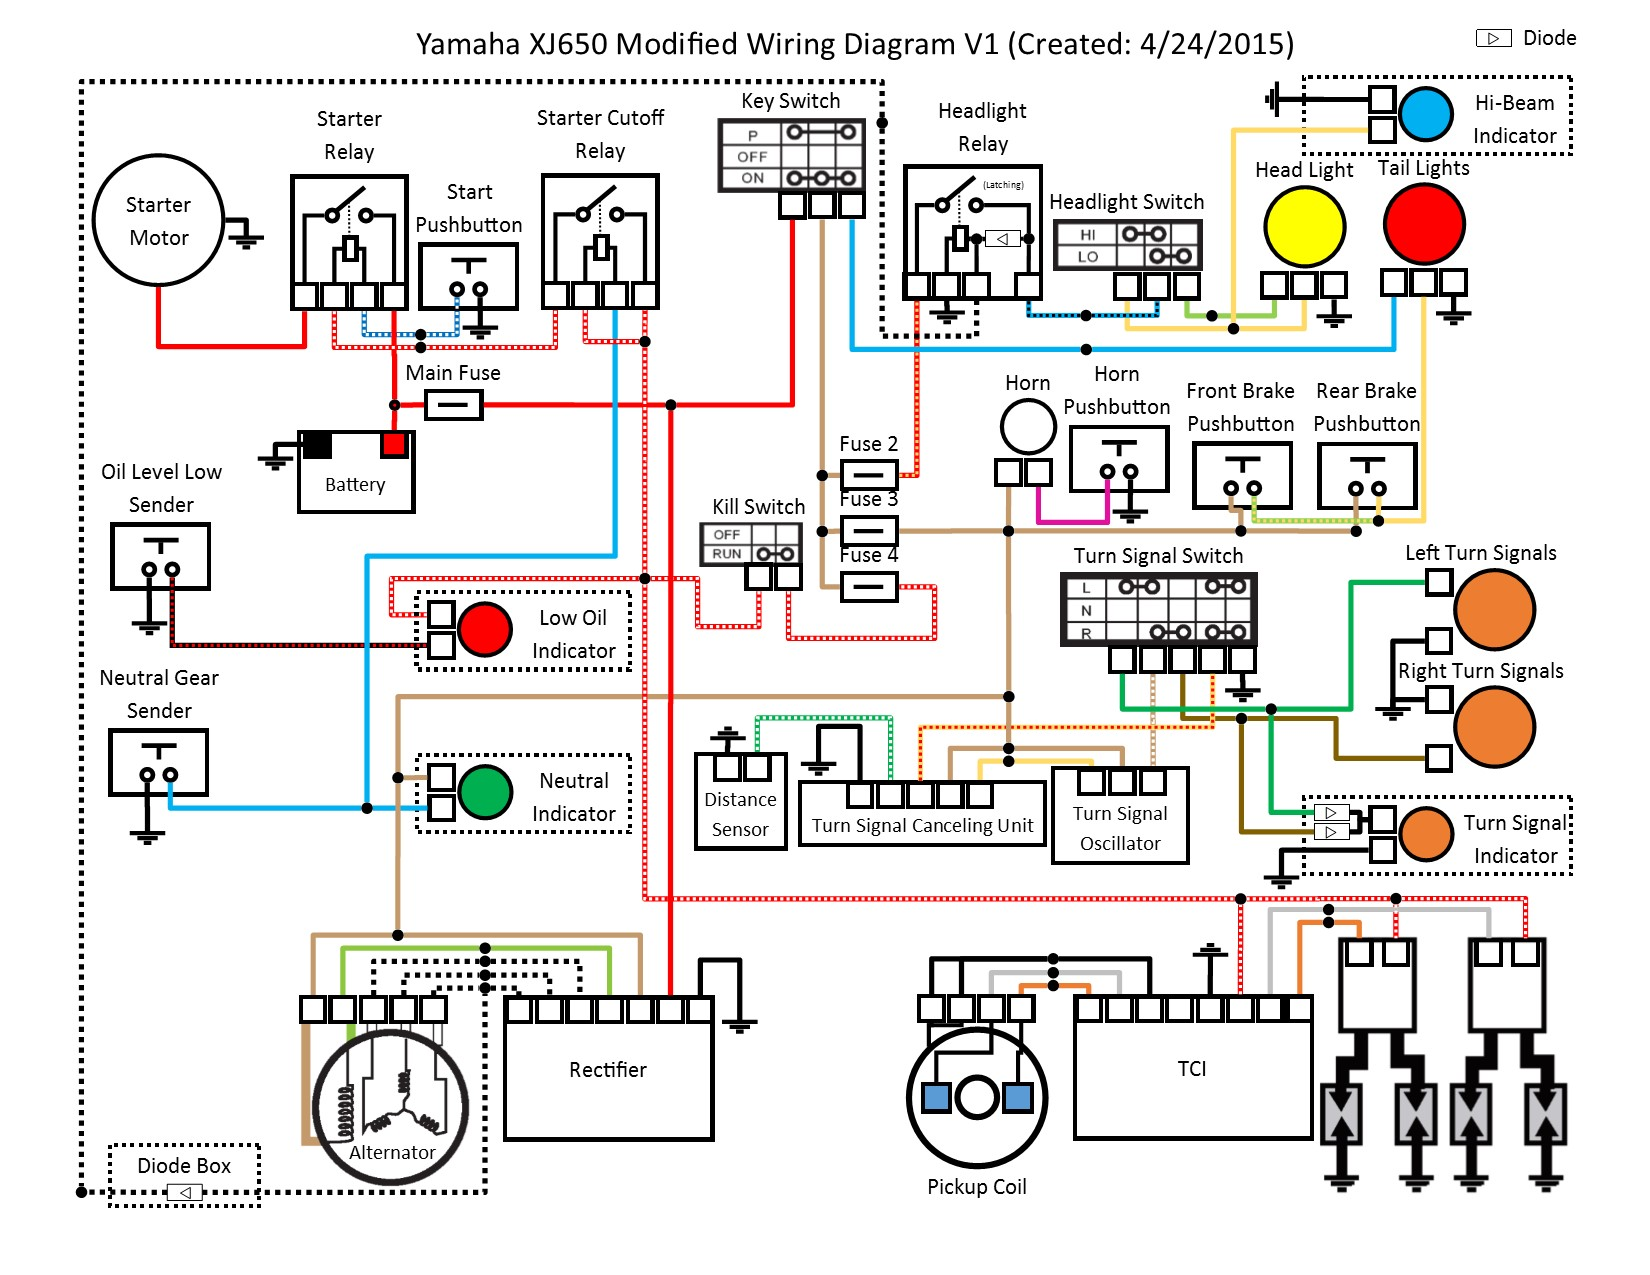 Kl 8323 Electrical Building Wiring Diagram Pdf Download Diagram